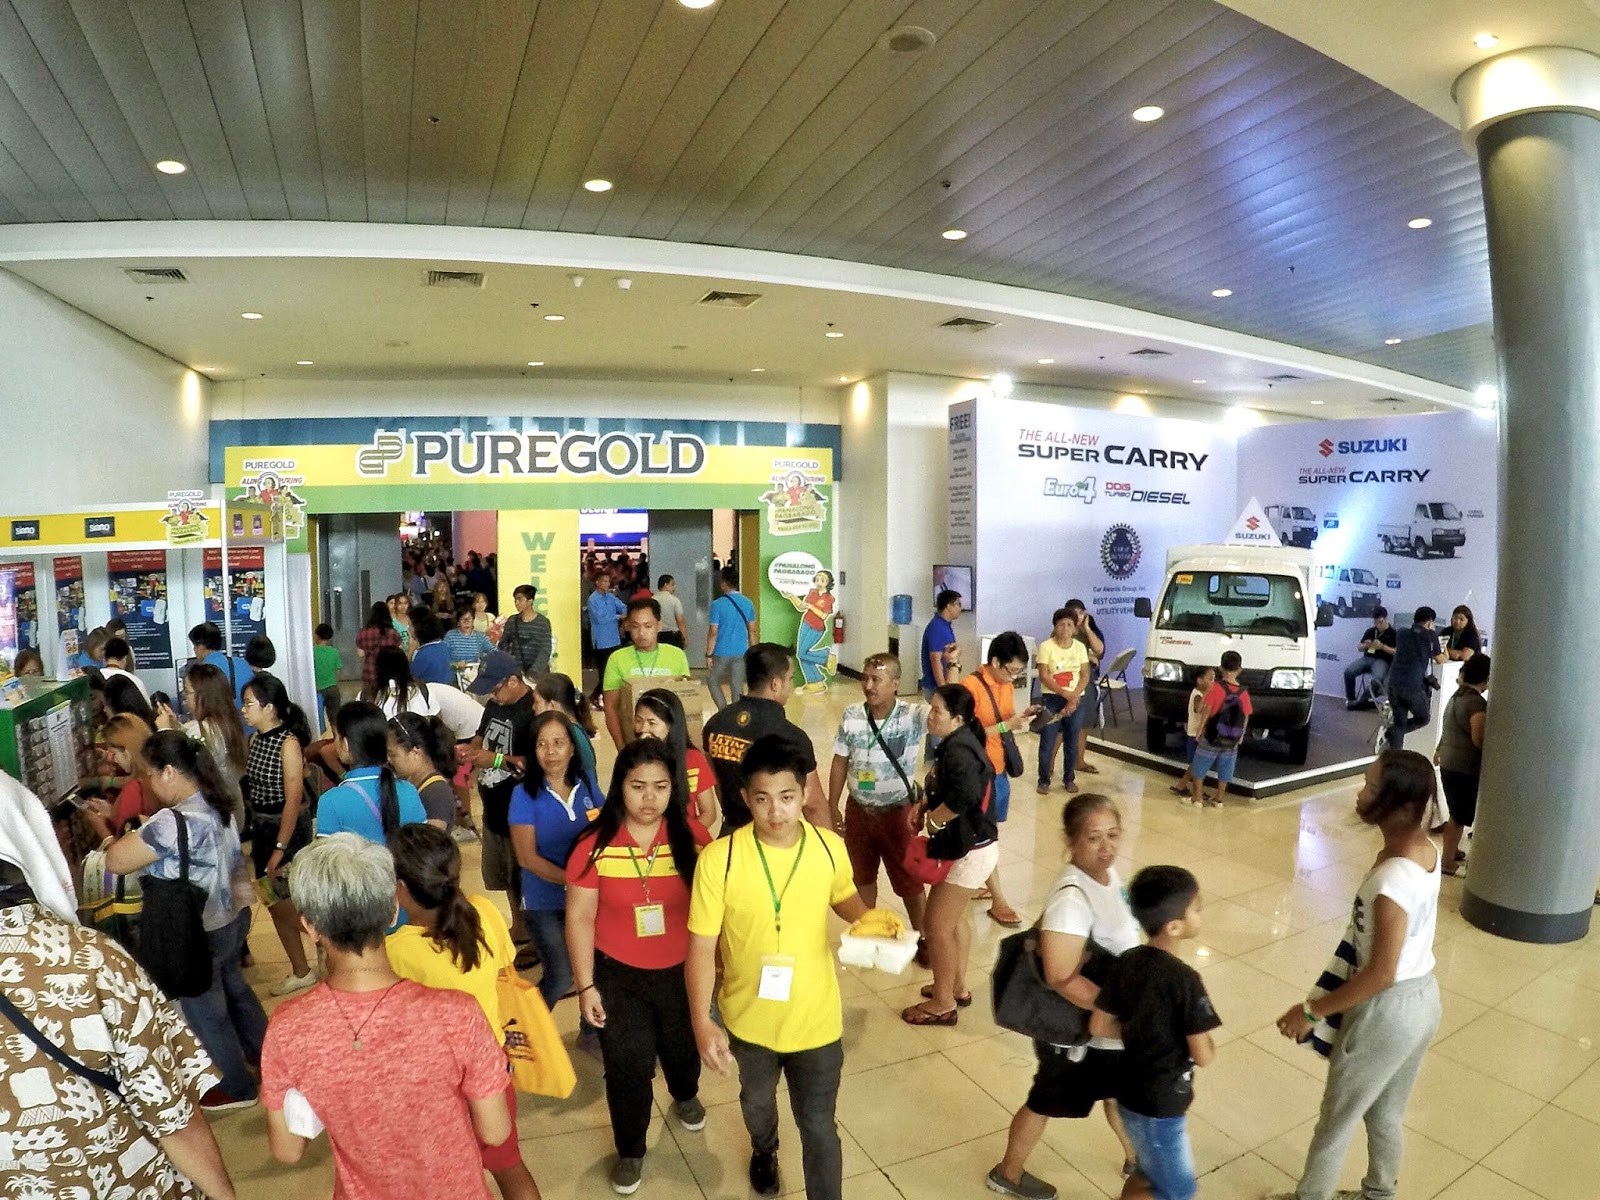 Suzuki PH joined retail giant Puregold's 14th Sari-Sari Store Convention